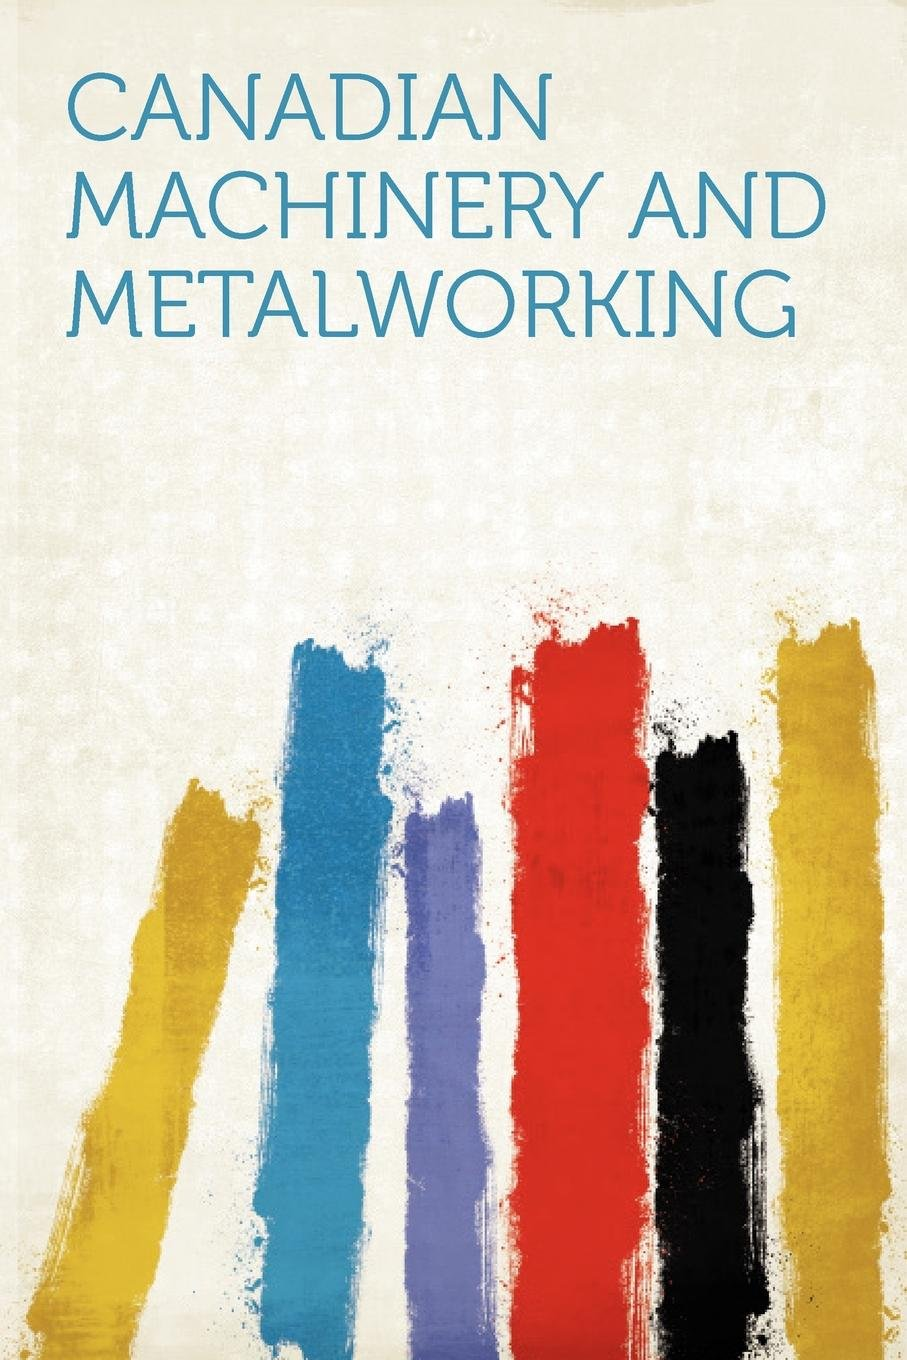 Canadian Machinery and Metalworking Volume v14 no 04 pdf